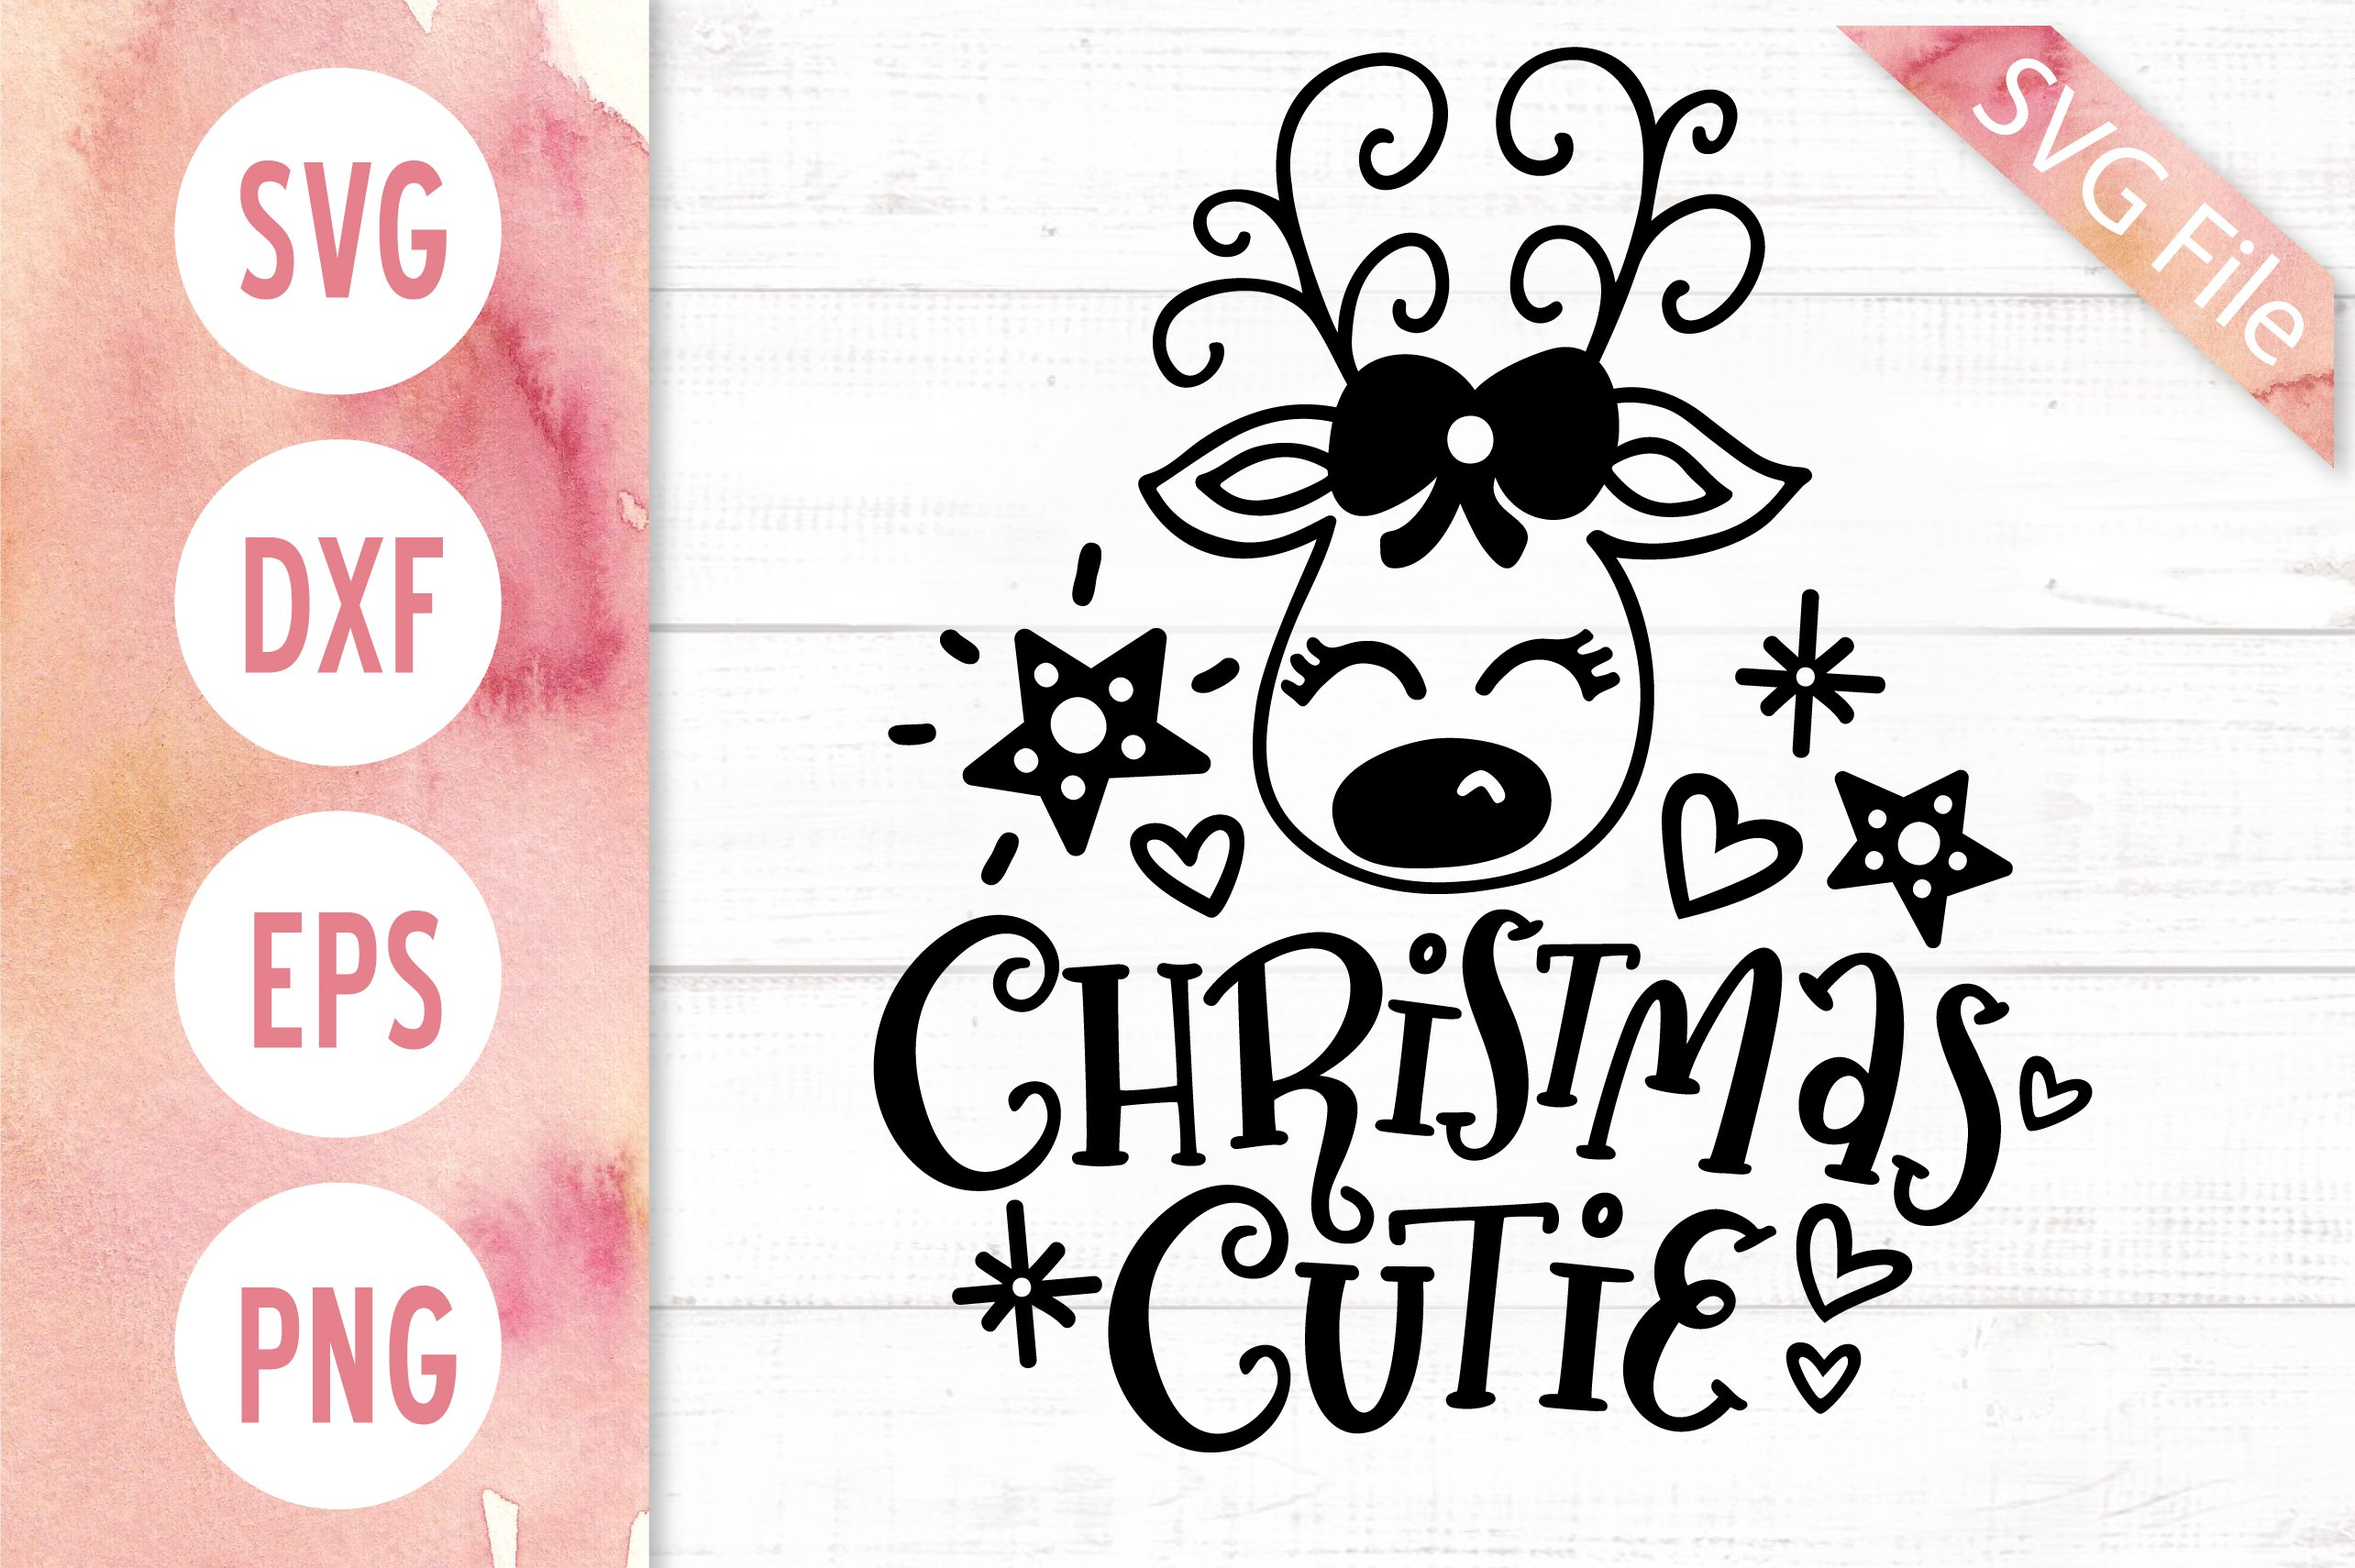 Christmas Cutie Svg Dxf Png Eps Baby Girl Christmas Svg 375353 Svgs Design Bundles